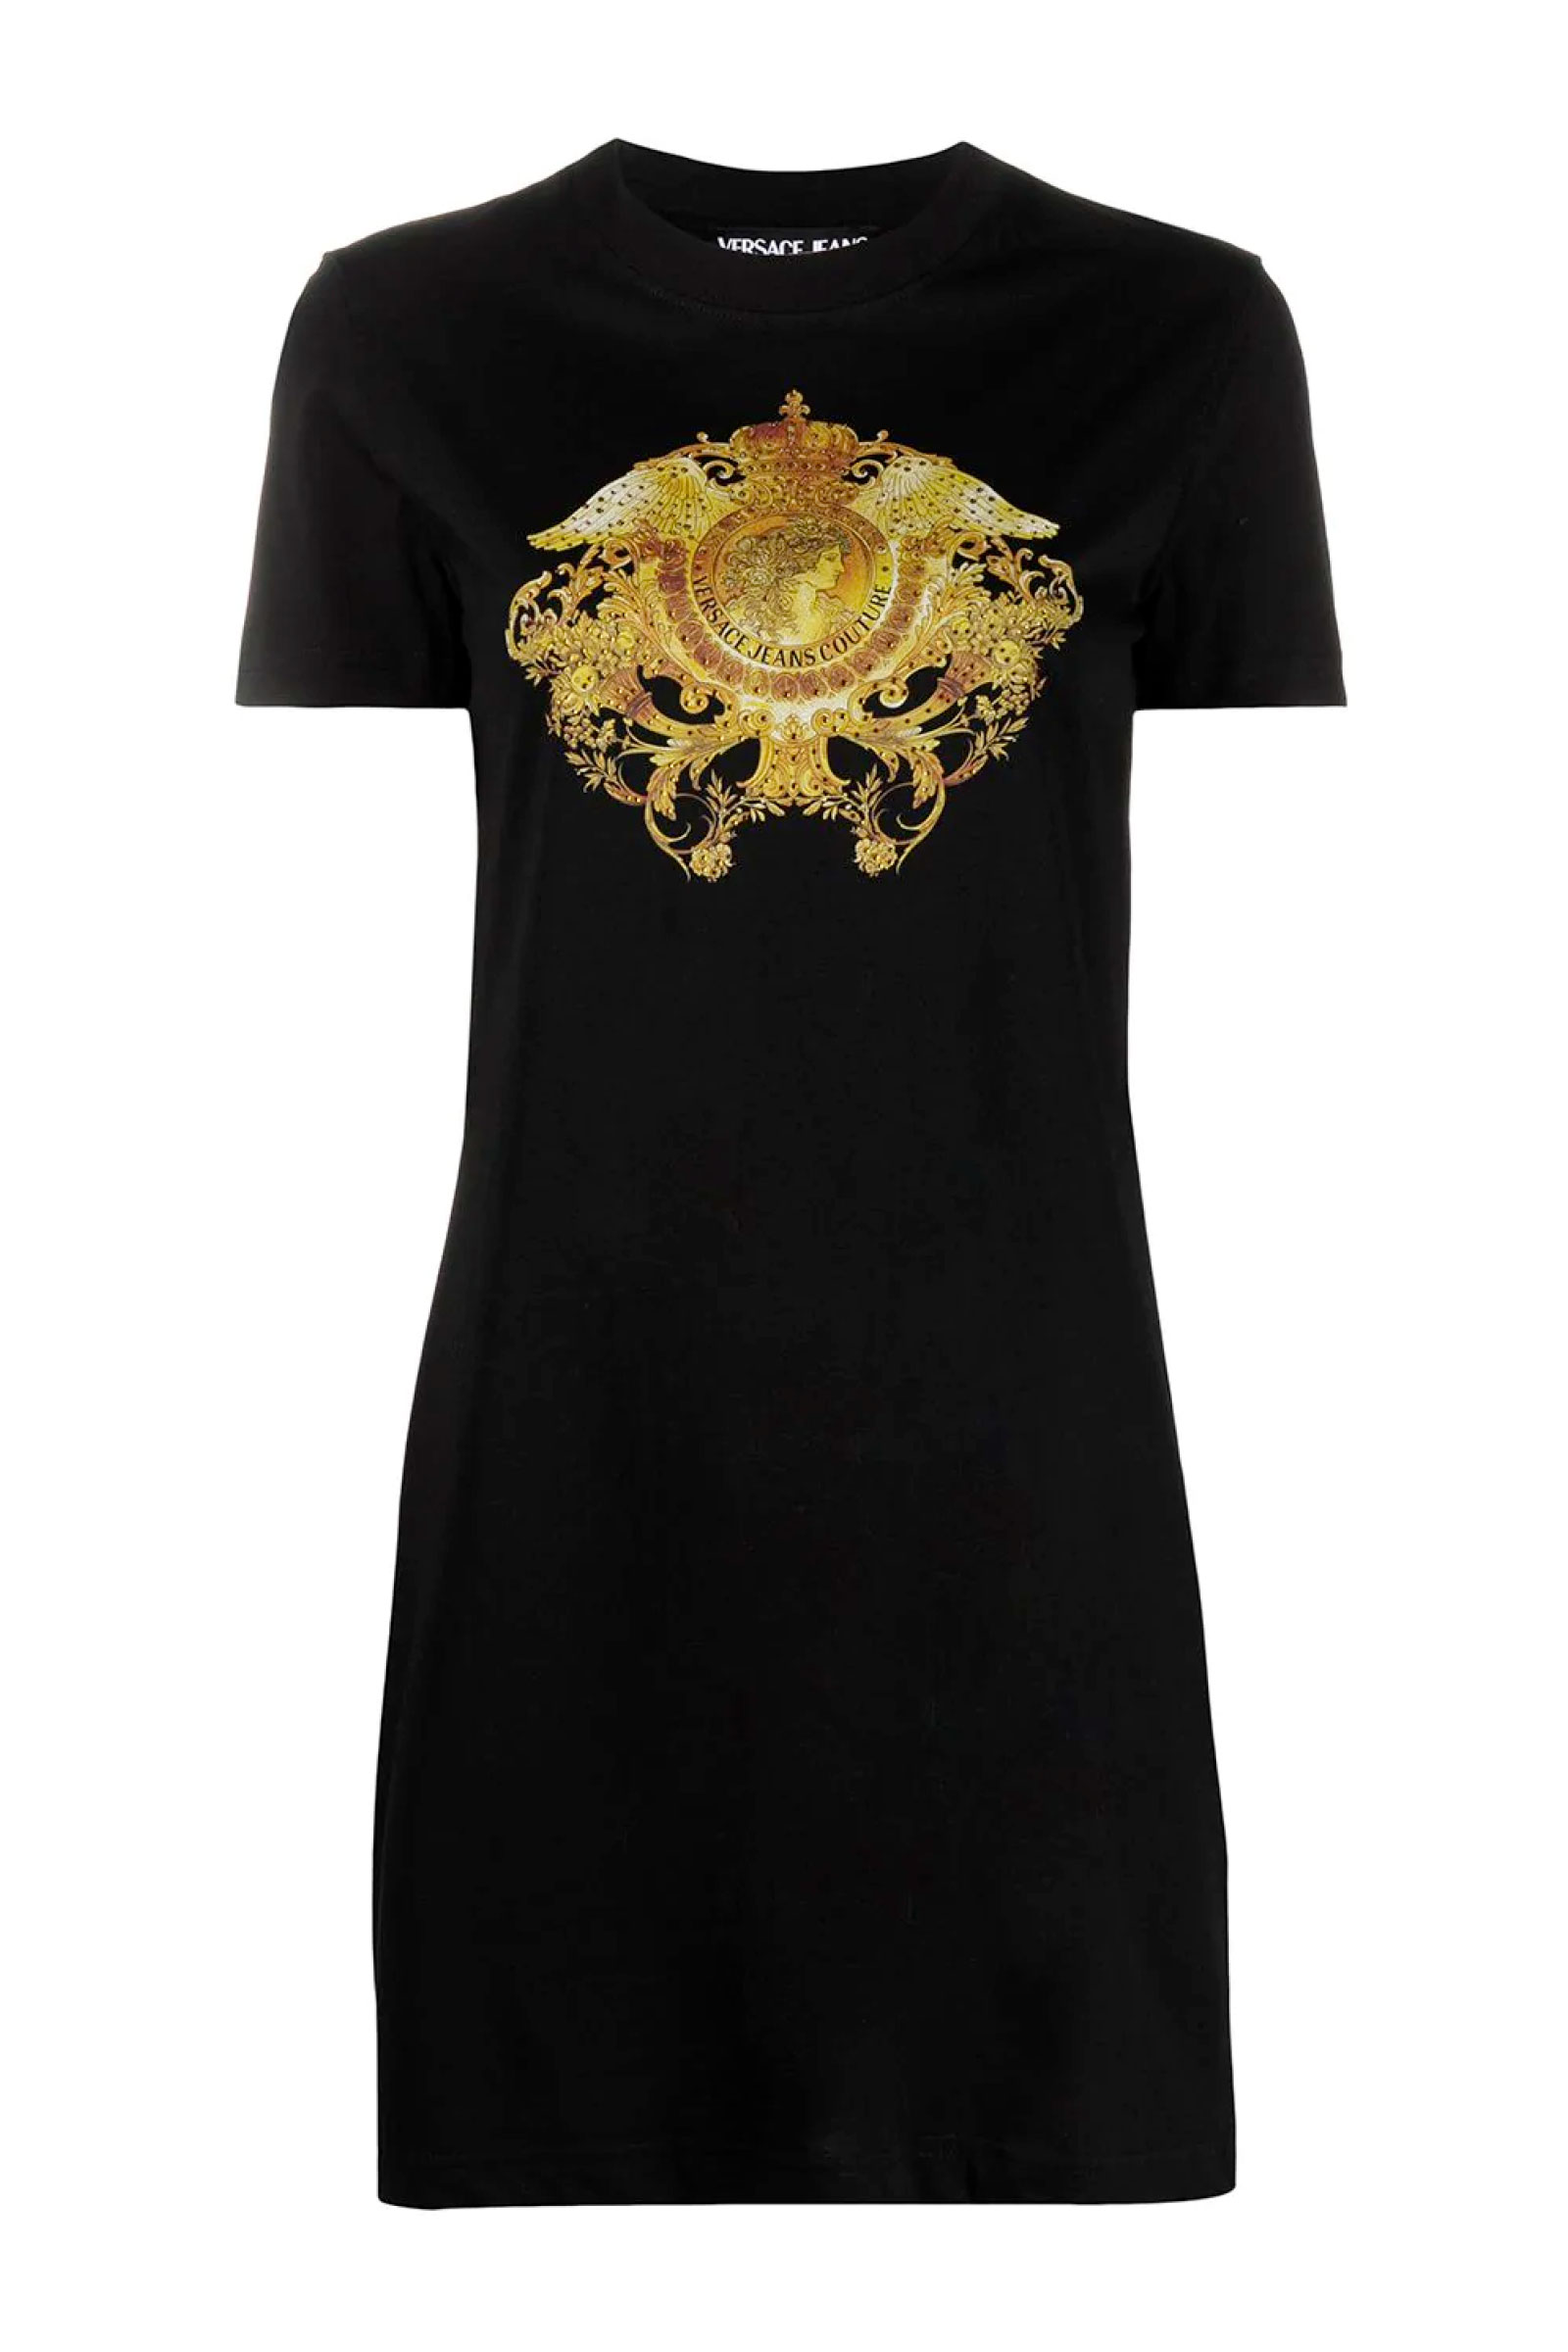 VERSACE JEANS COUTURE Woman Dress VERSACE JEANS COUTURE | Dress | D2HWA41811620899